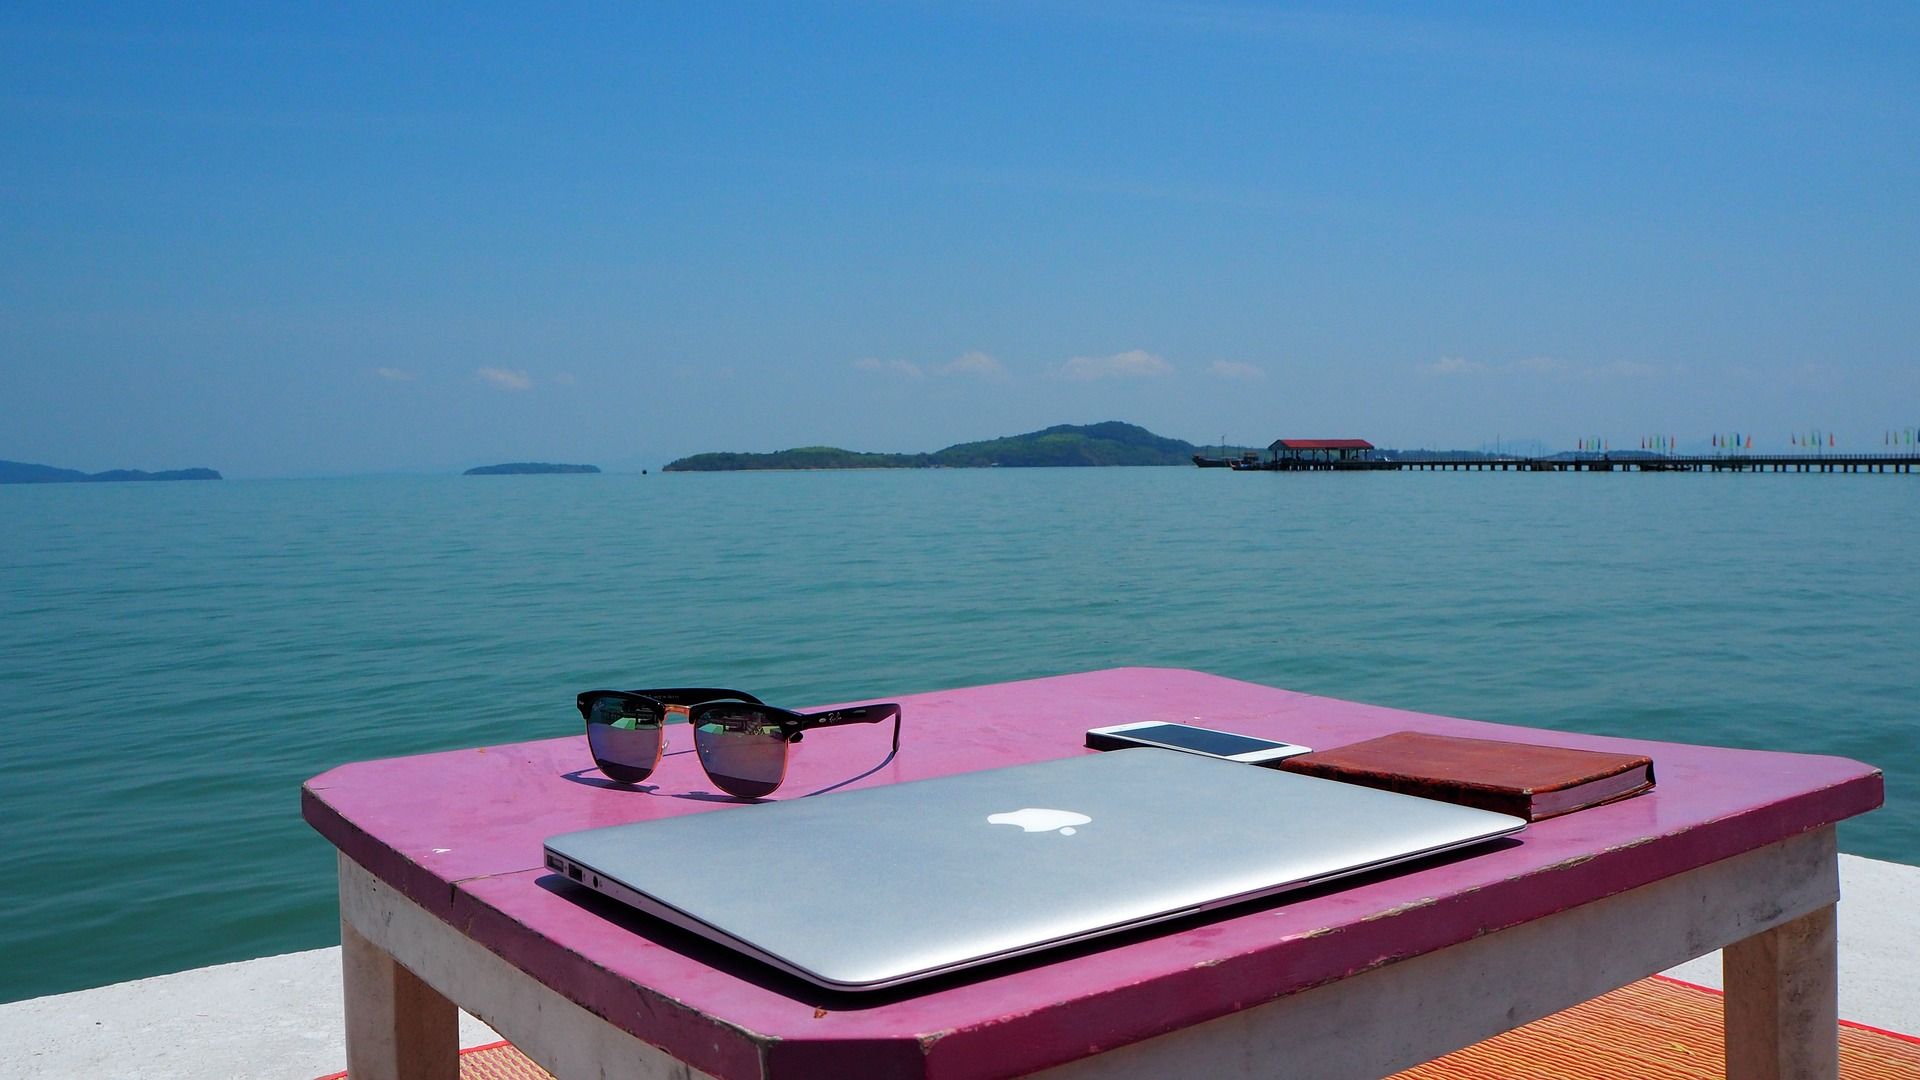 Remote workers' set up by the sea